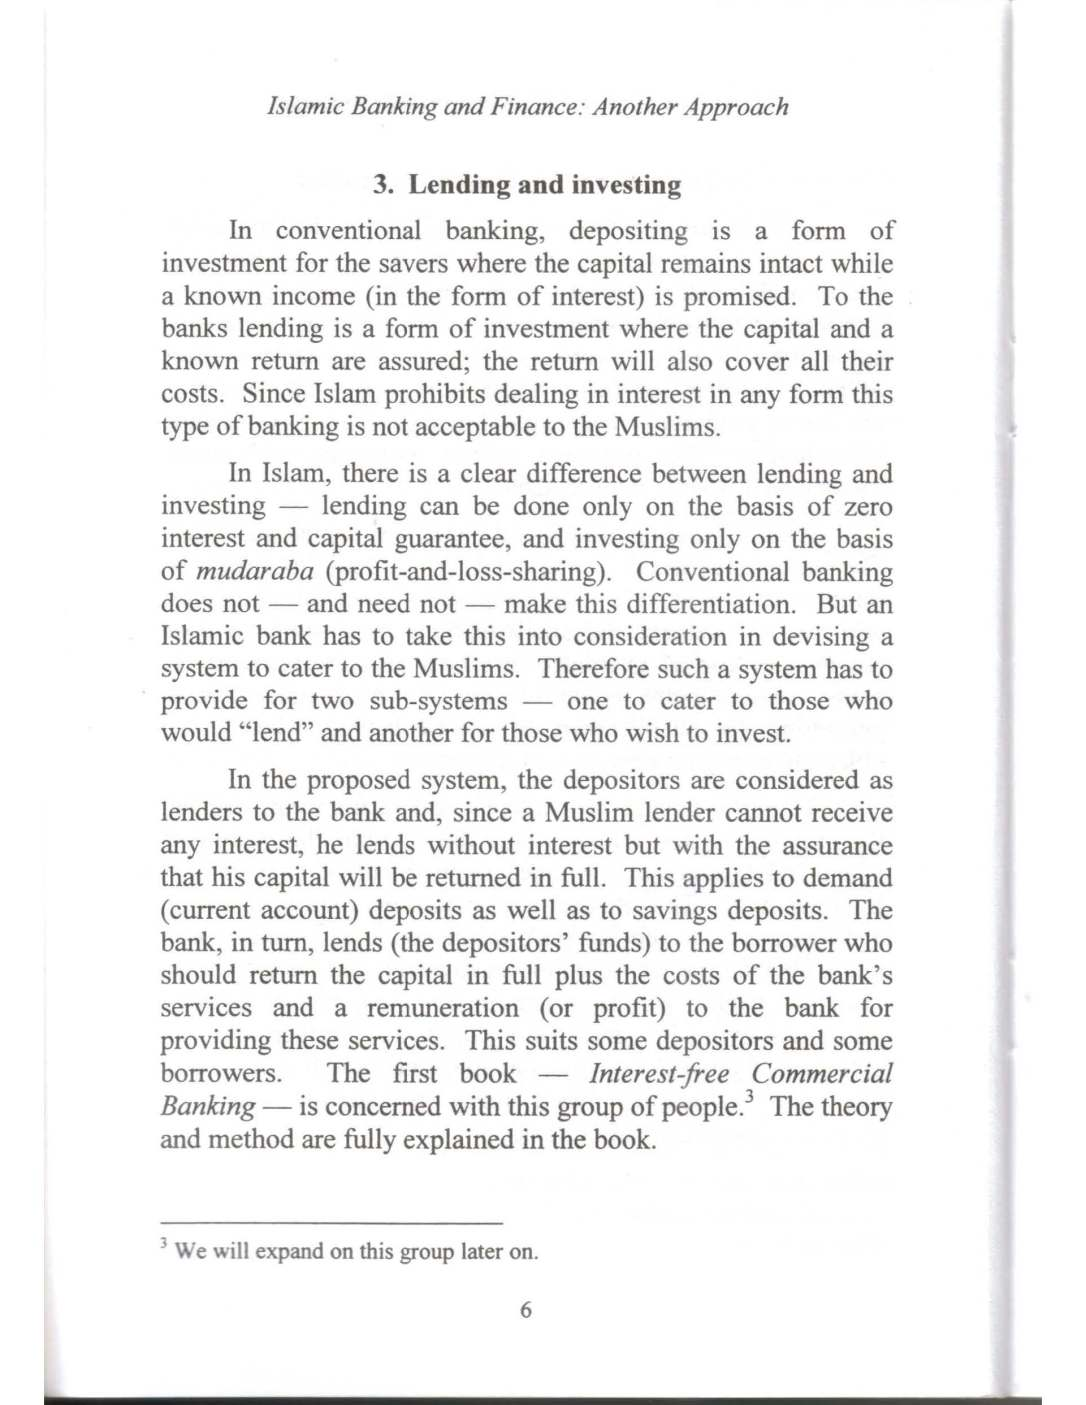 Islamic Banking and Finance - Another Approach_Page_07